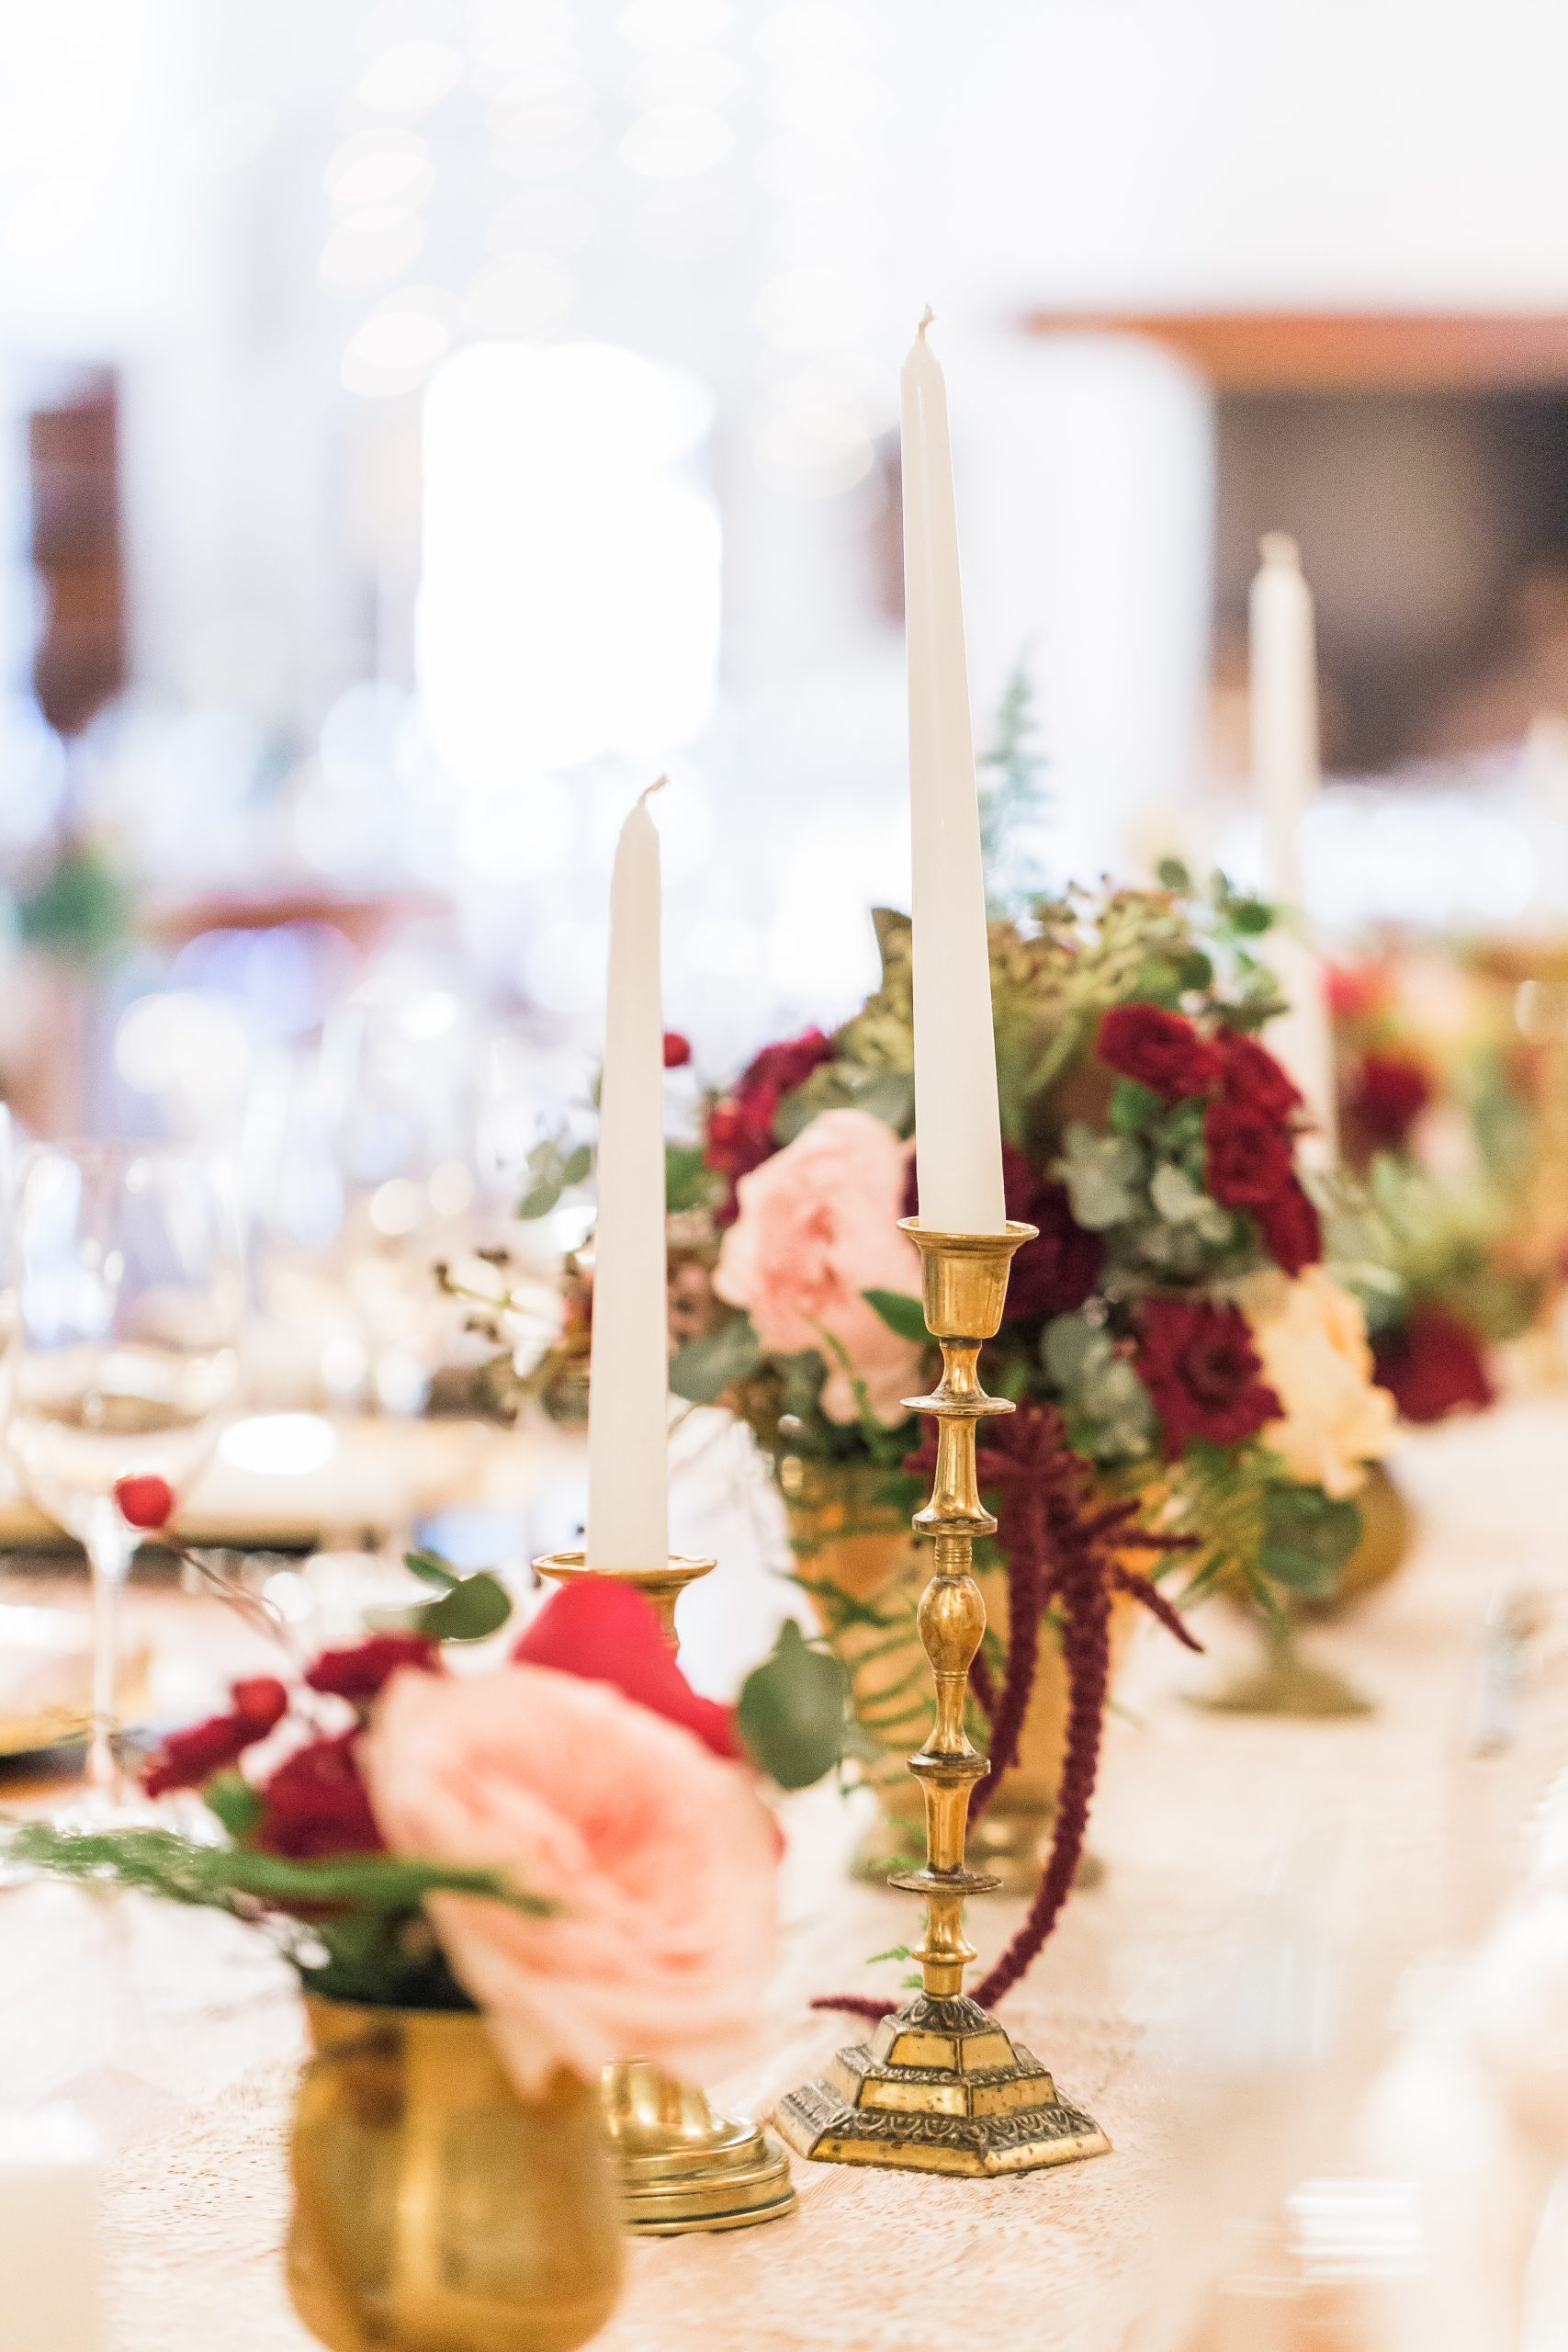 Gorgeous Wedding Tablescapes With Candles And Table Arrangements scaled